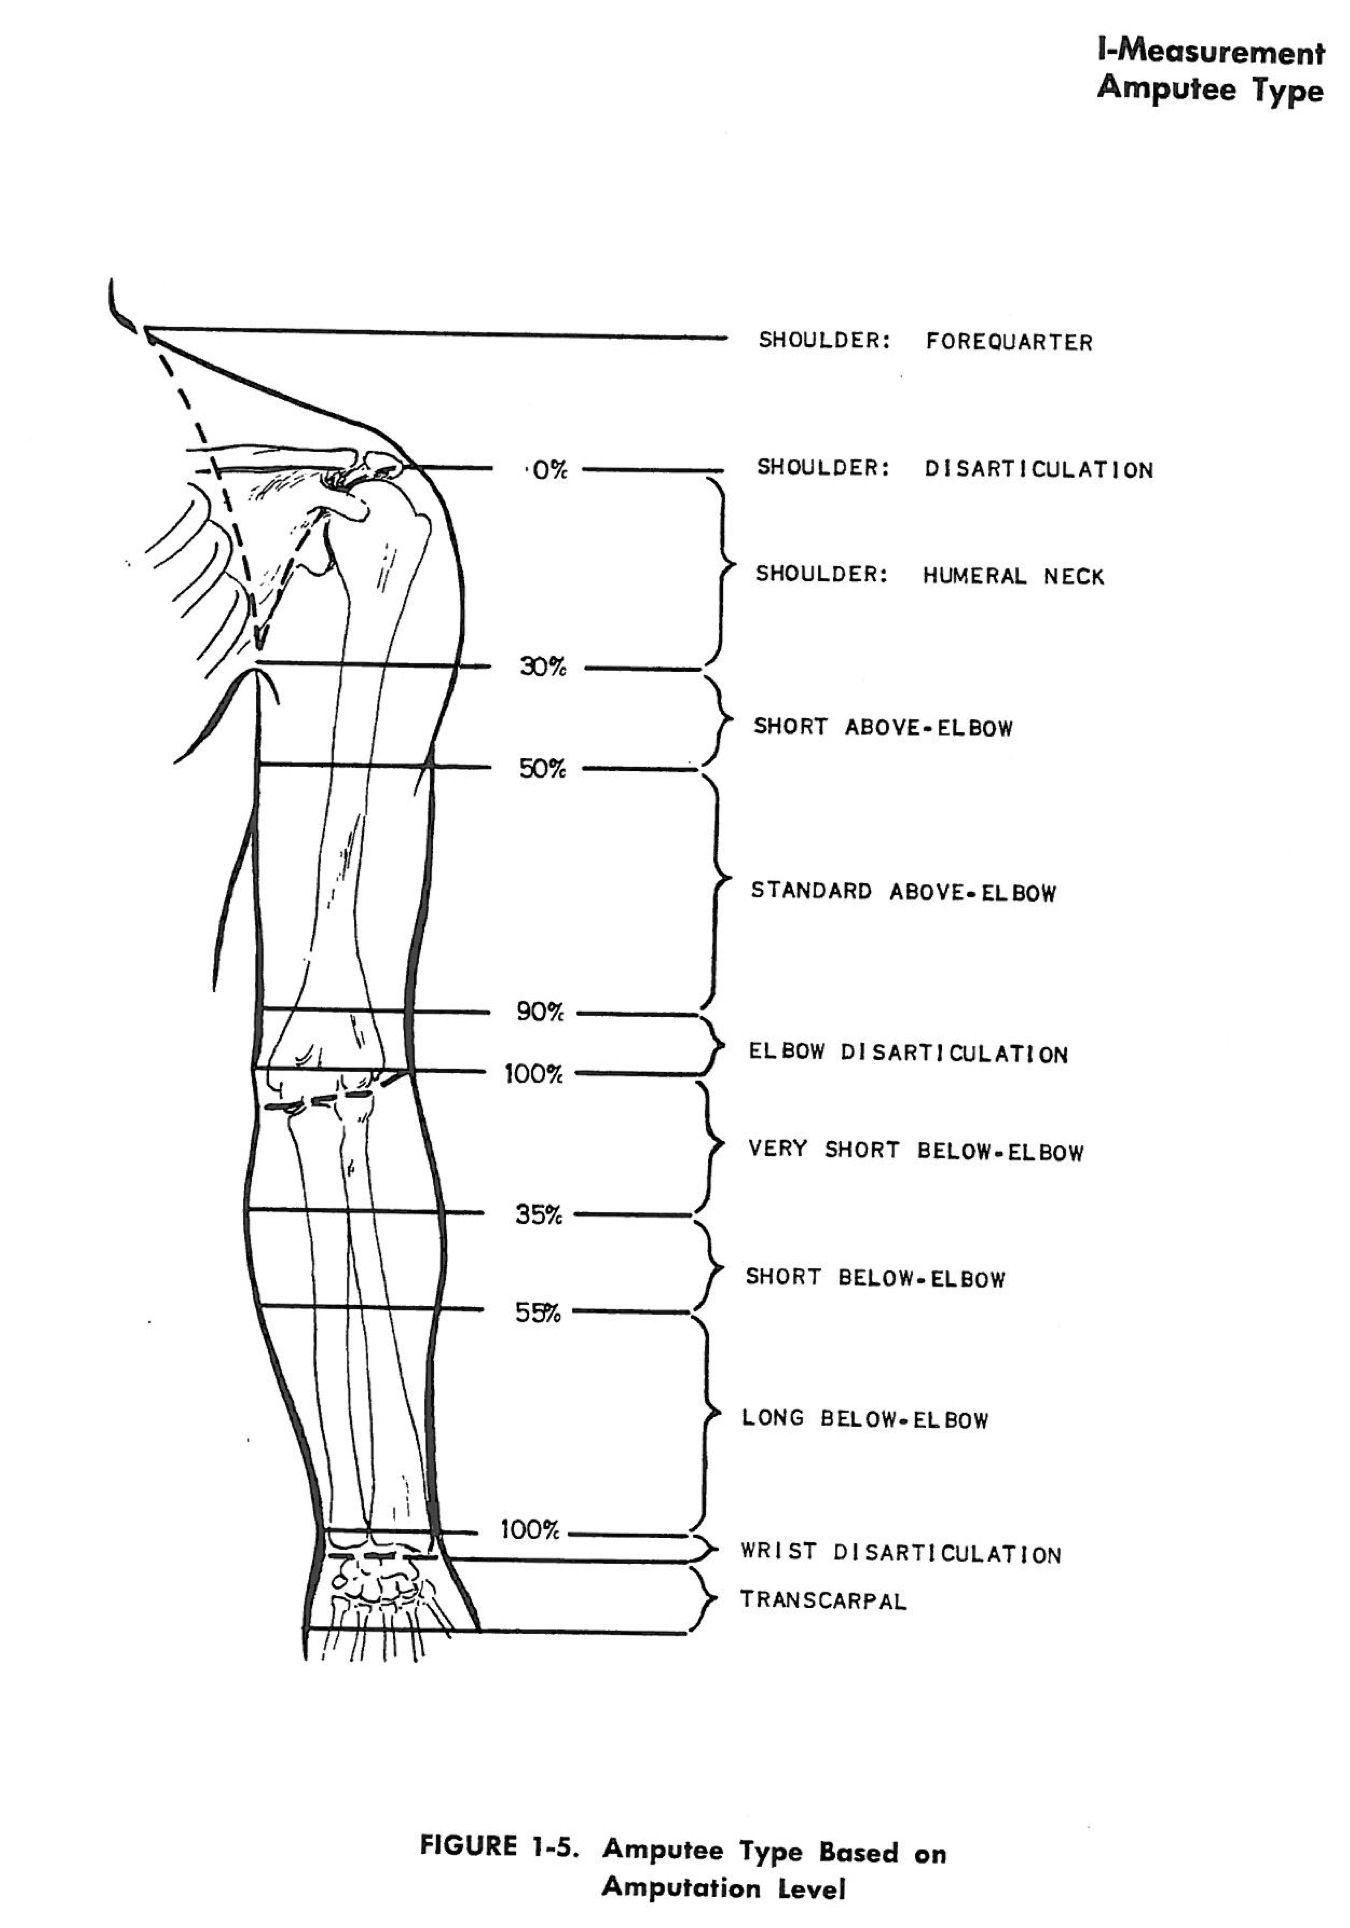 hight resolution of amputee nomenclature by level of upper extremity amputation